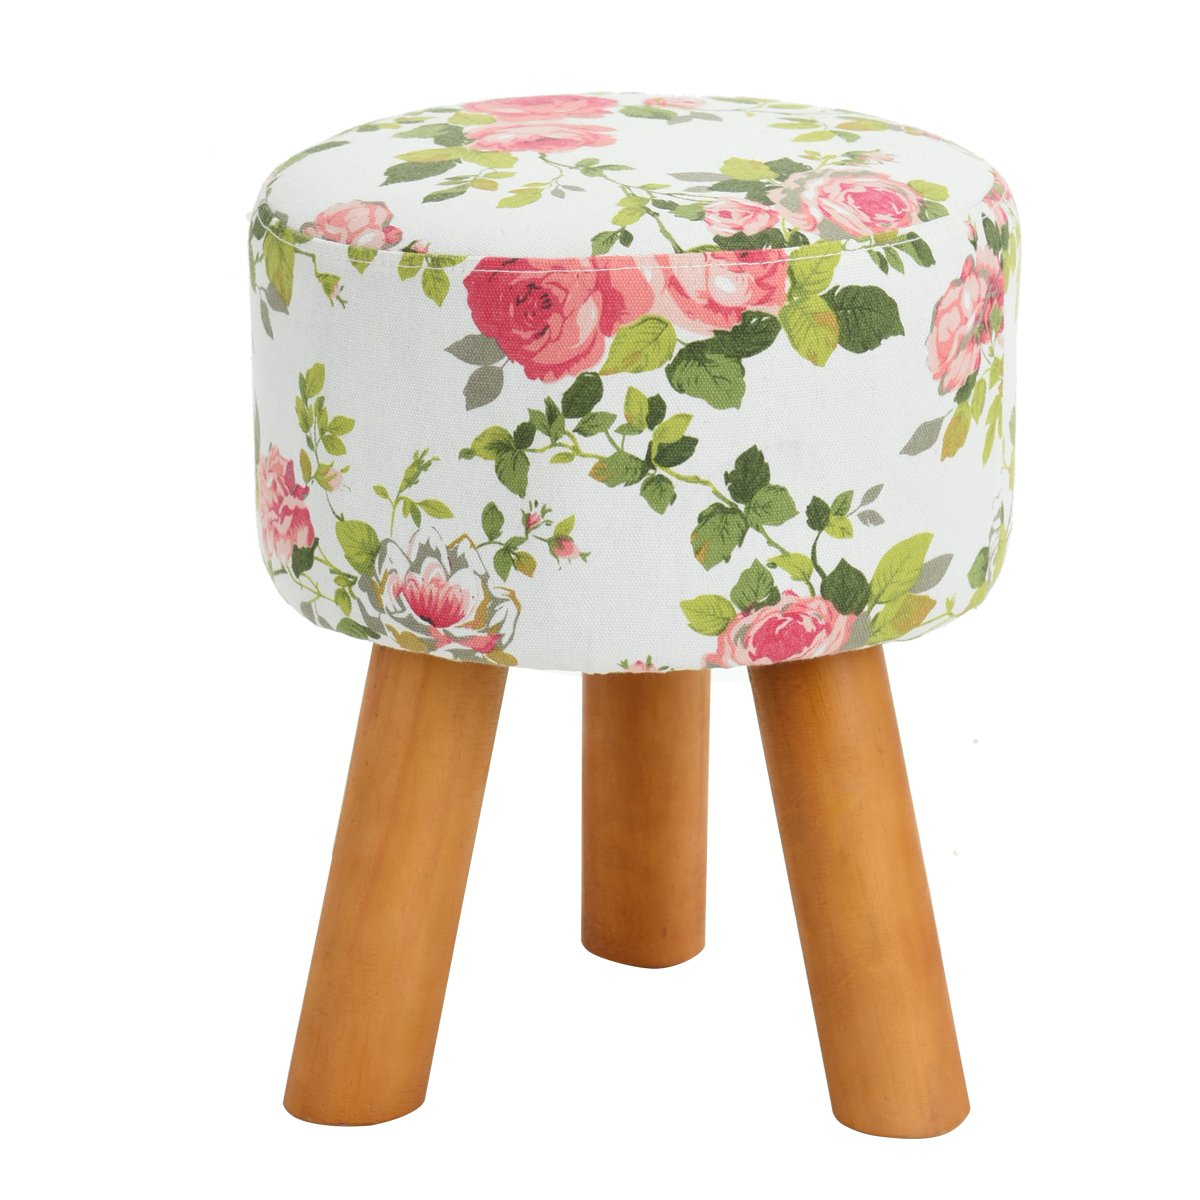 """Floral Round Ottoman Low Foot Step Stool With Wood Legs For Wearing Shoes,Green,Diameter: 11.8"""" Height: 15.7"""""""